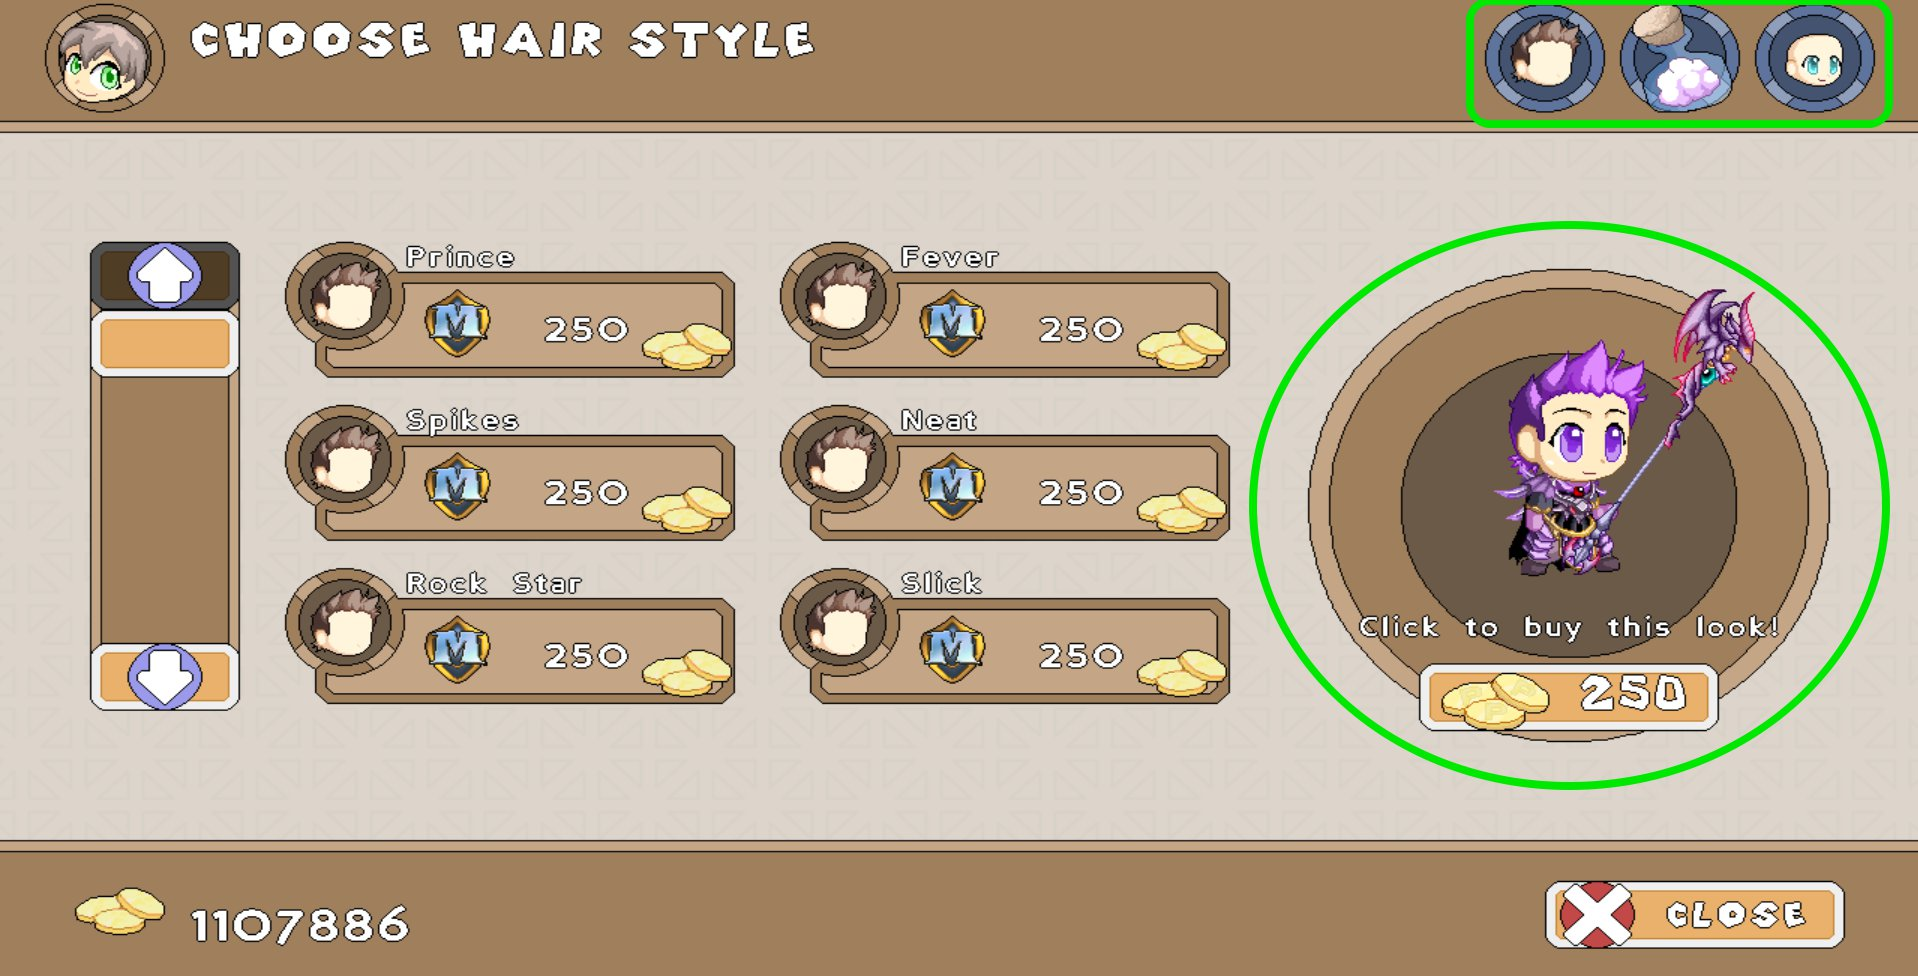 It Will Cost You 250 Gold Each Time Change Your Appearance So Make Sure Like Look Before Clicking To Buy